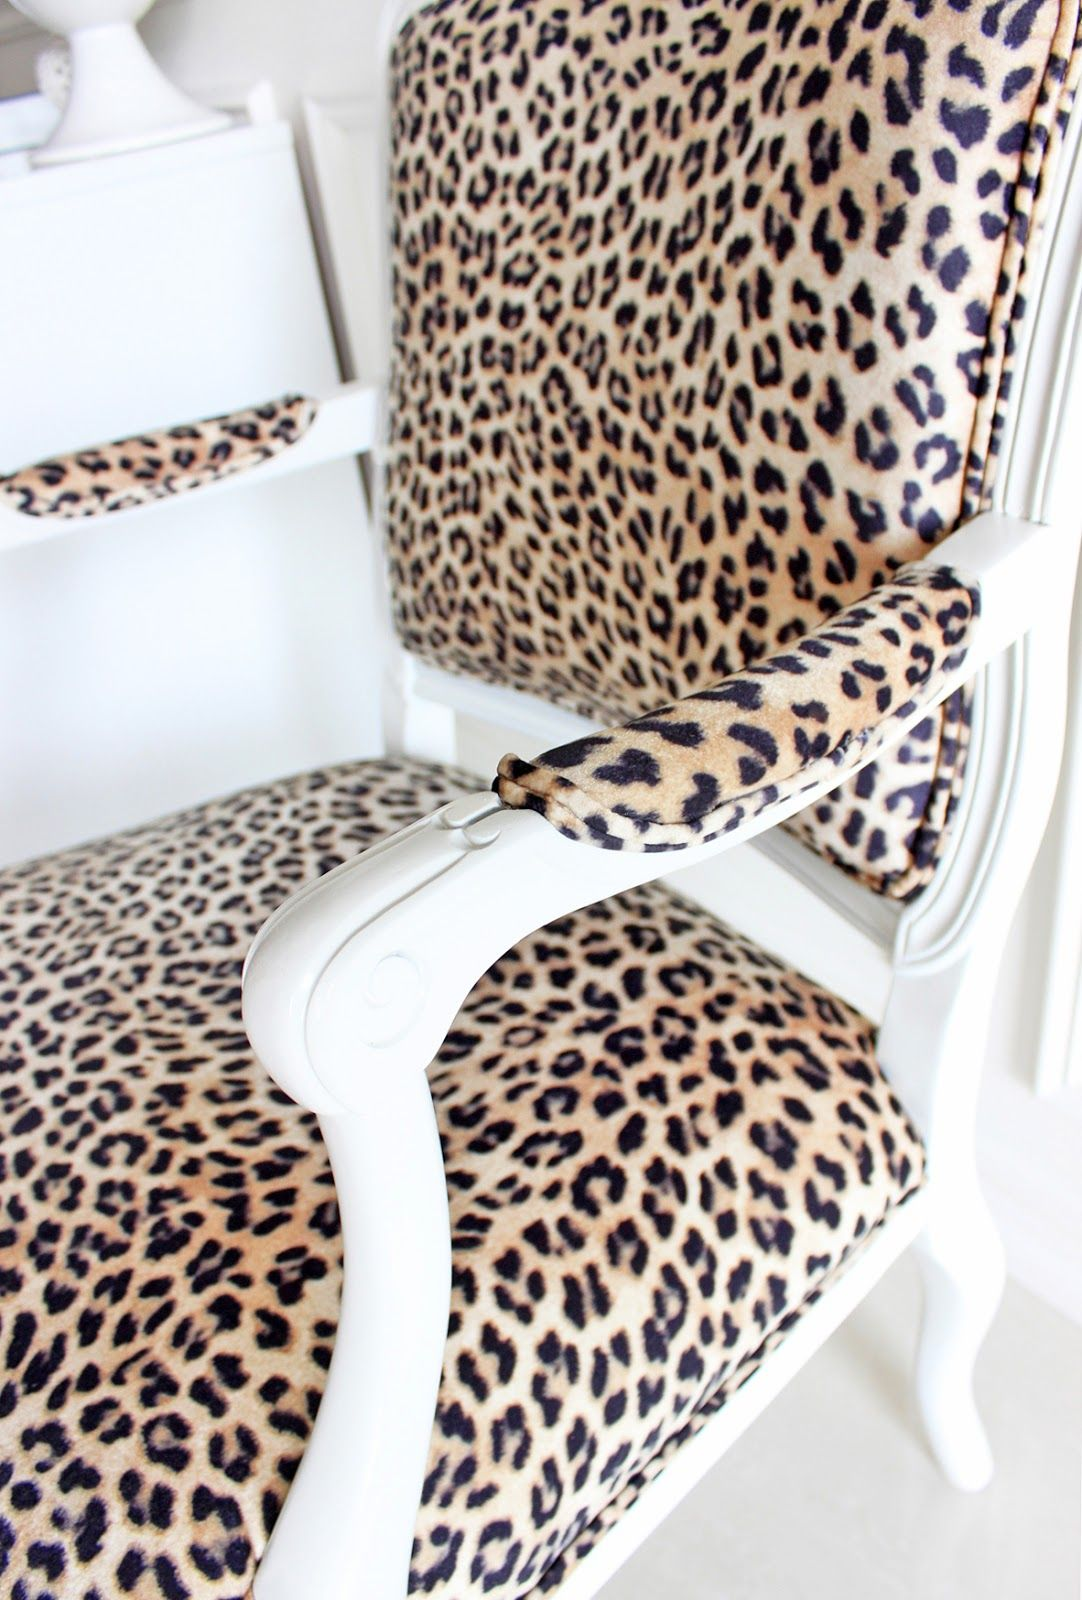 Louis xv living room furniture - French Louis Xv Chairs In Leopard Spot Upholstery Bergere Chair Upholstery Leopard Chairs